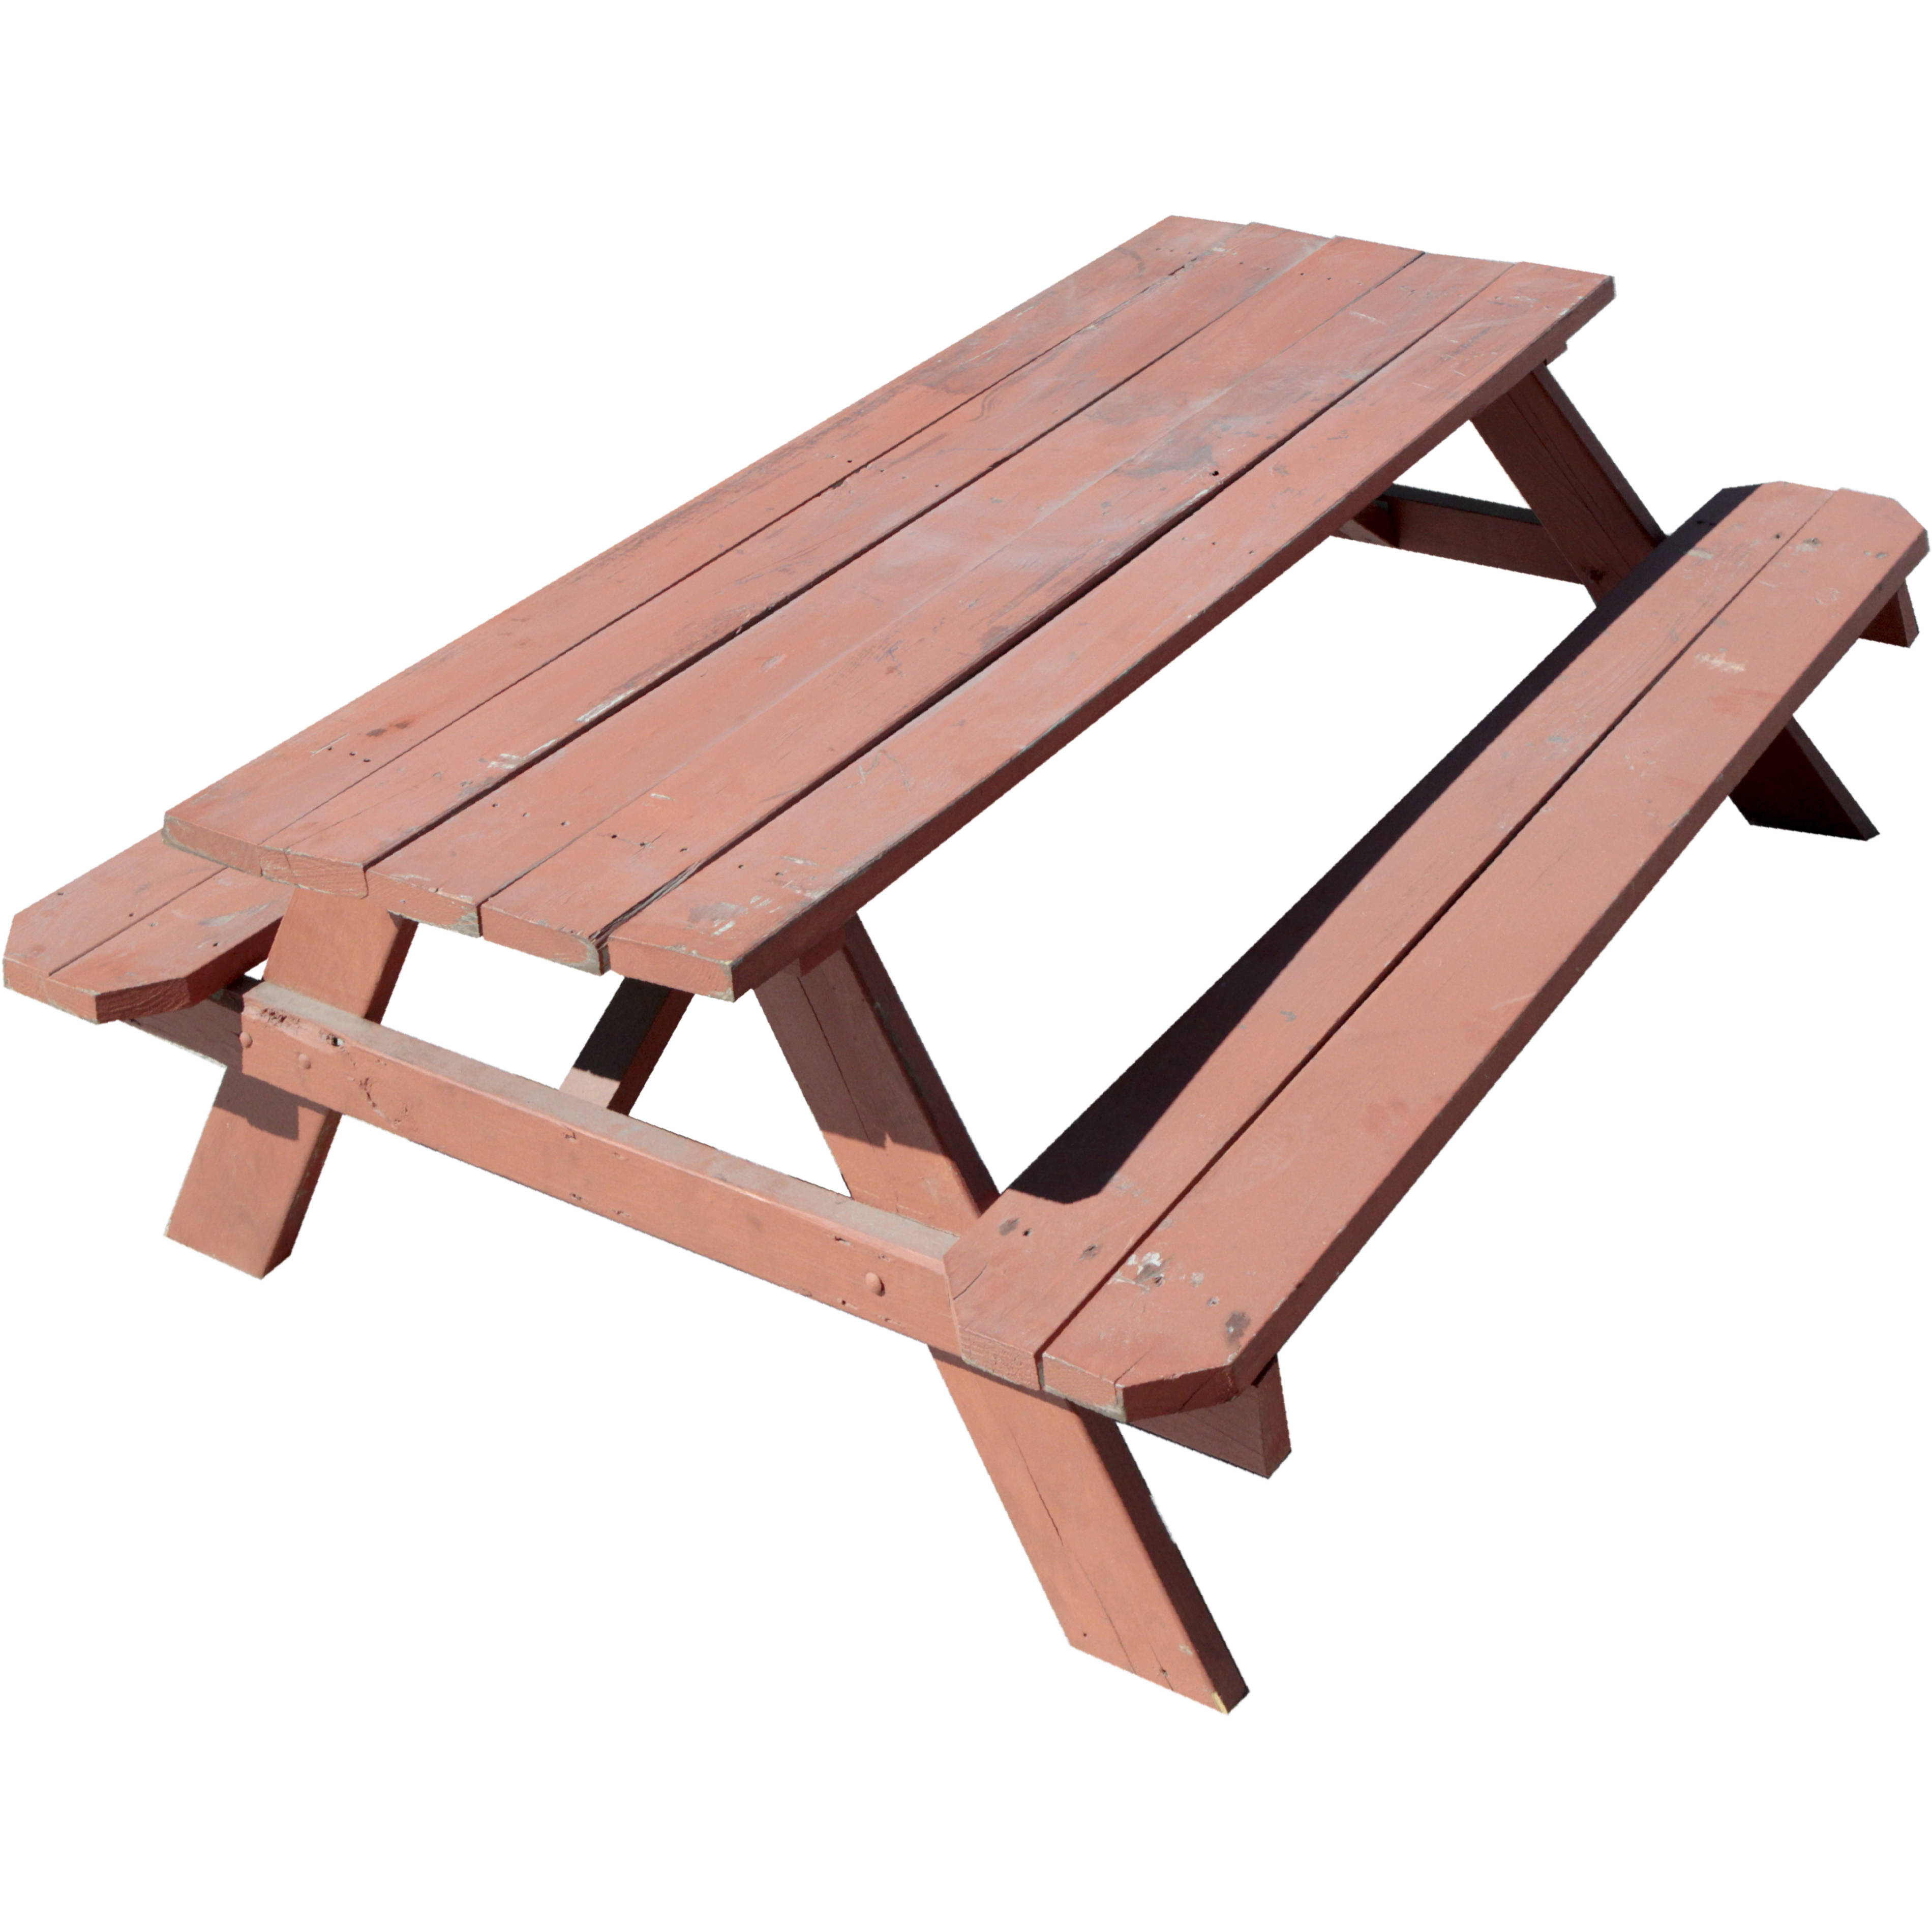 PICNIC TABLE WOOD SMALL Air Designs